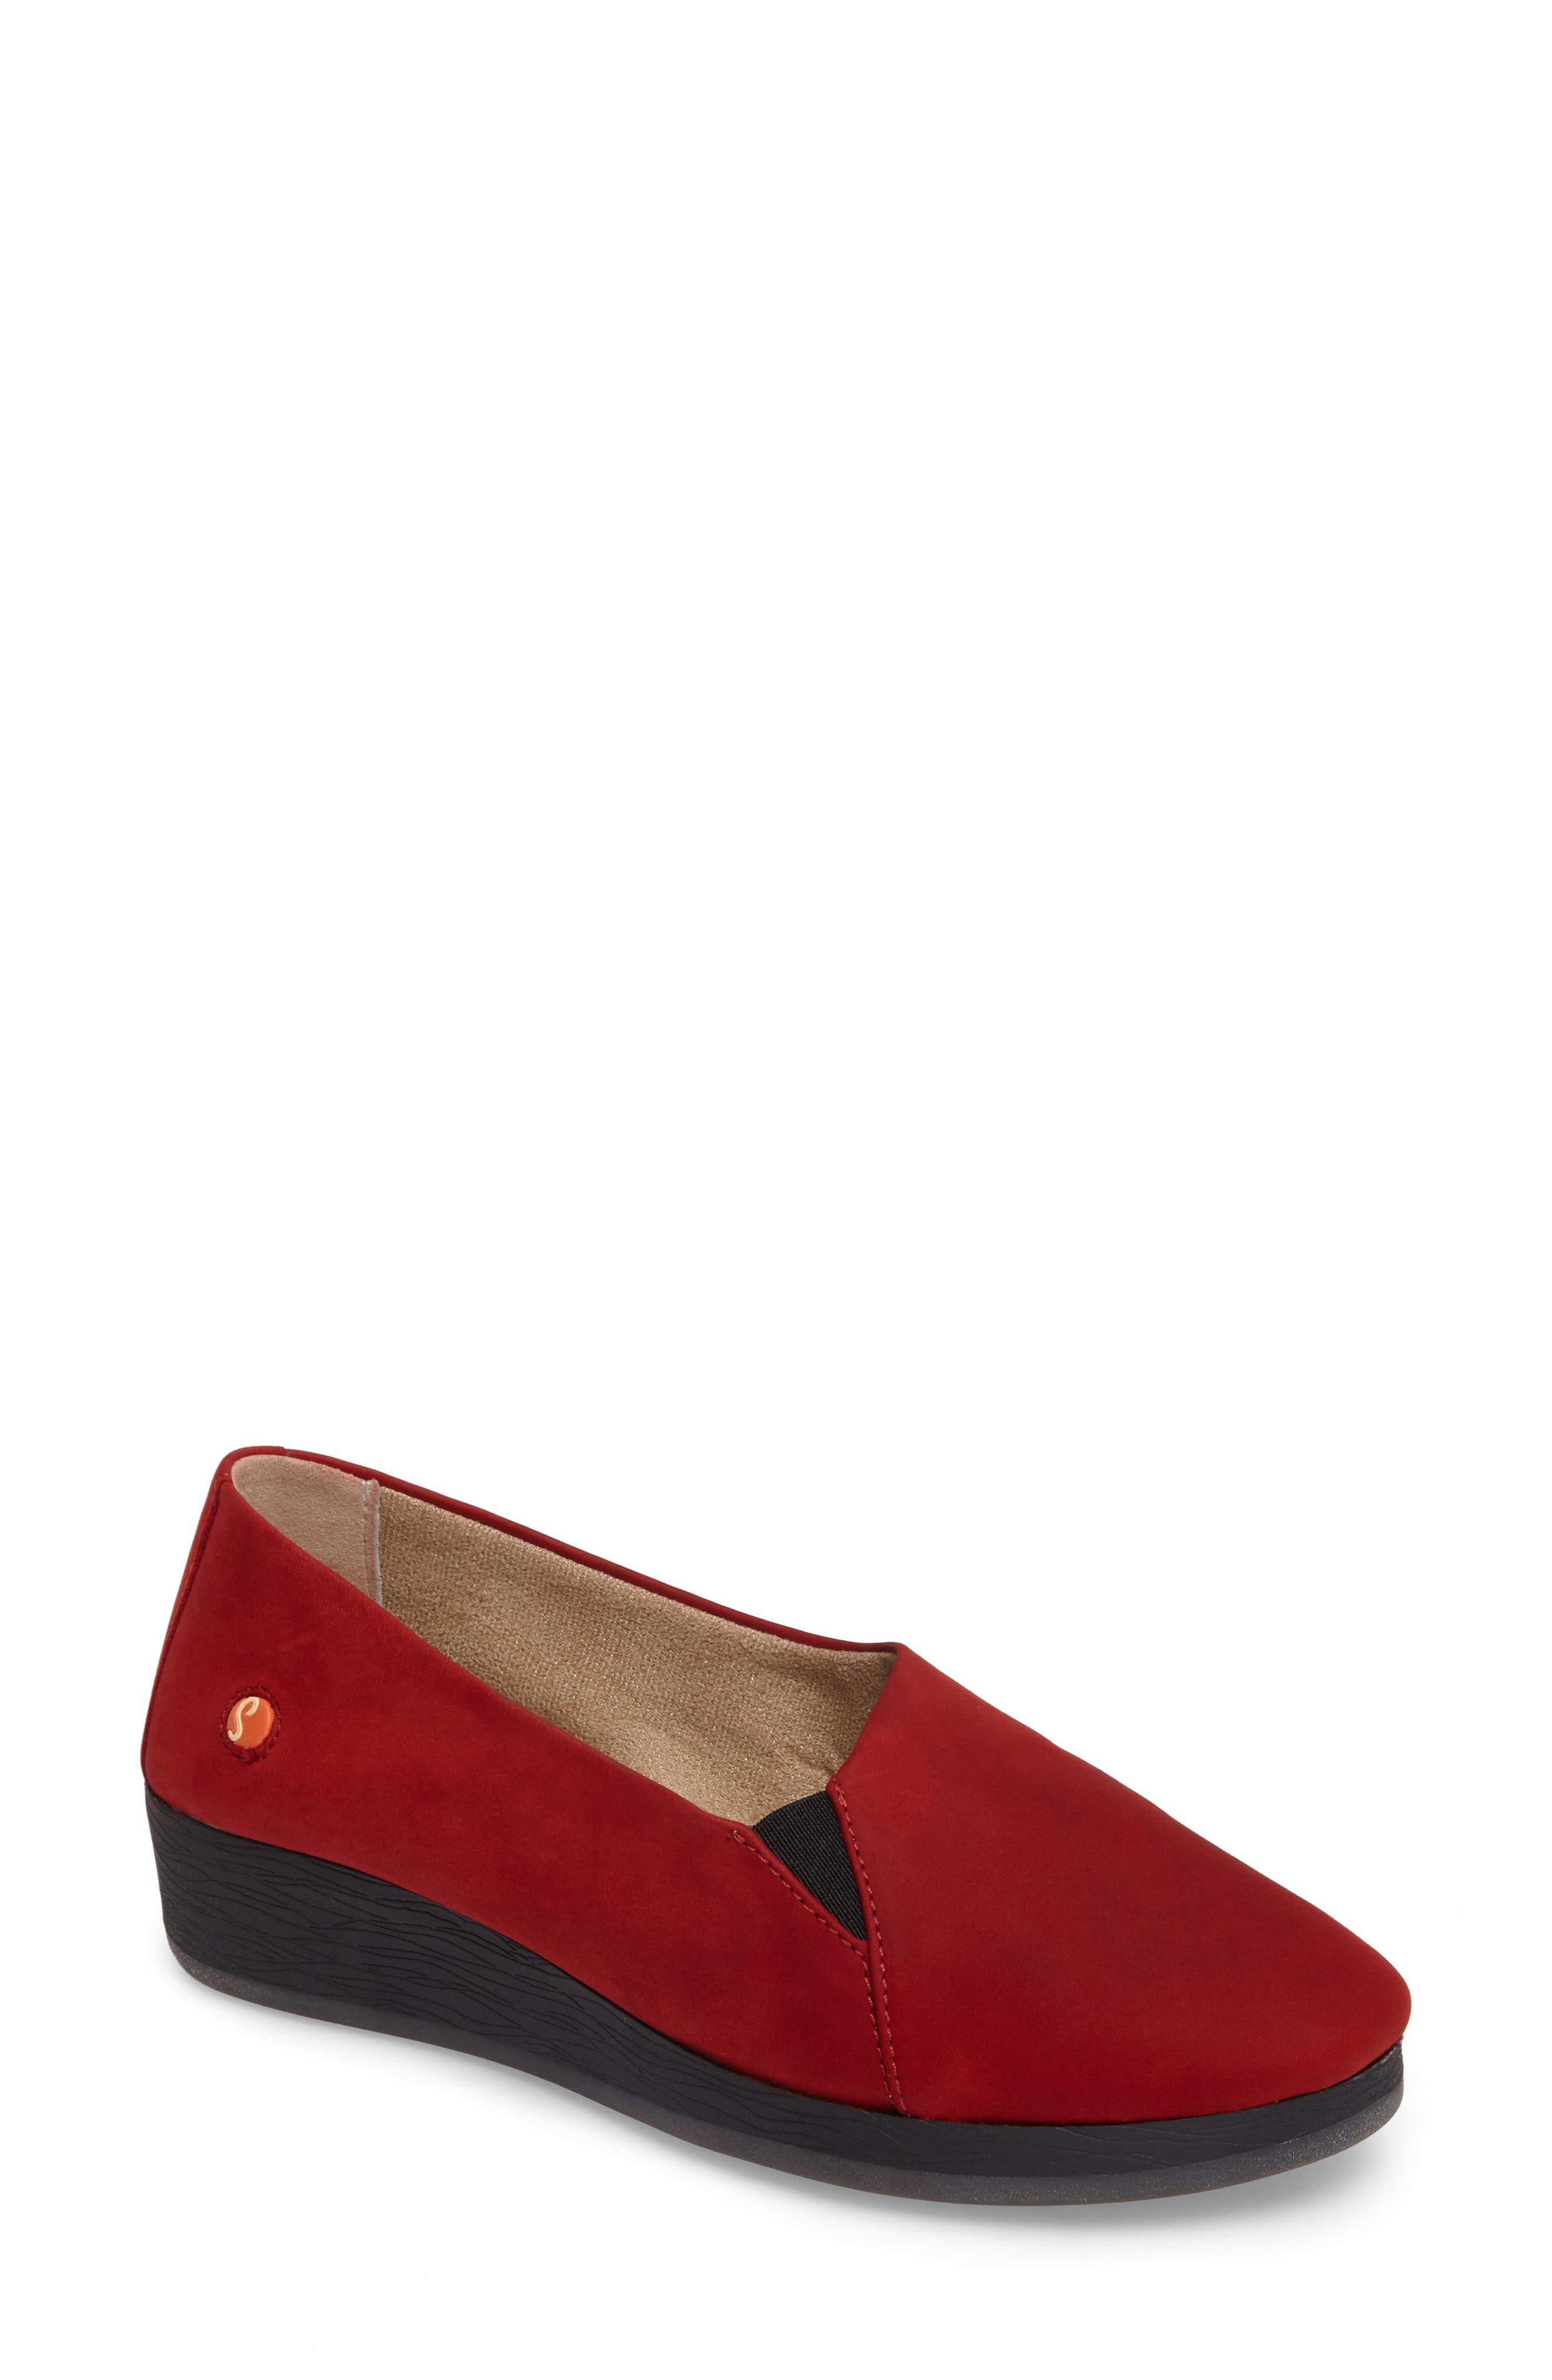 Ako Slip-On,                         Main,                         color, Red Nubuck Leather